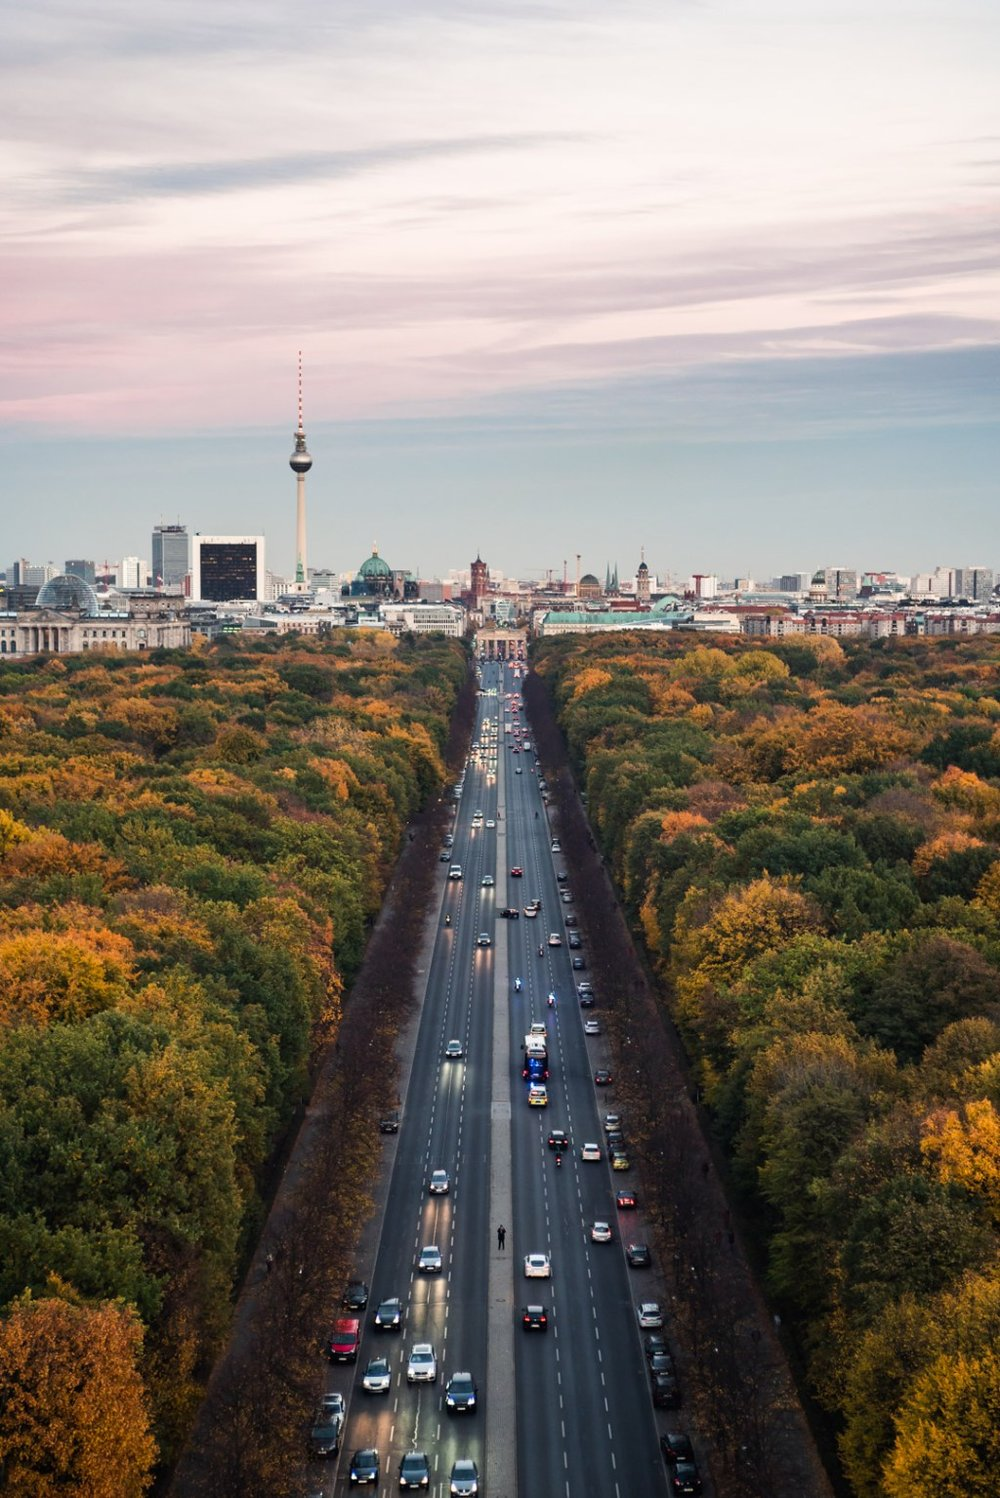 View of Berlin from the Top of Victory Tower